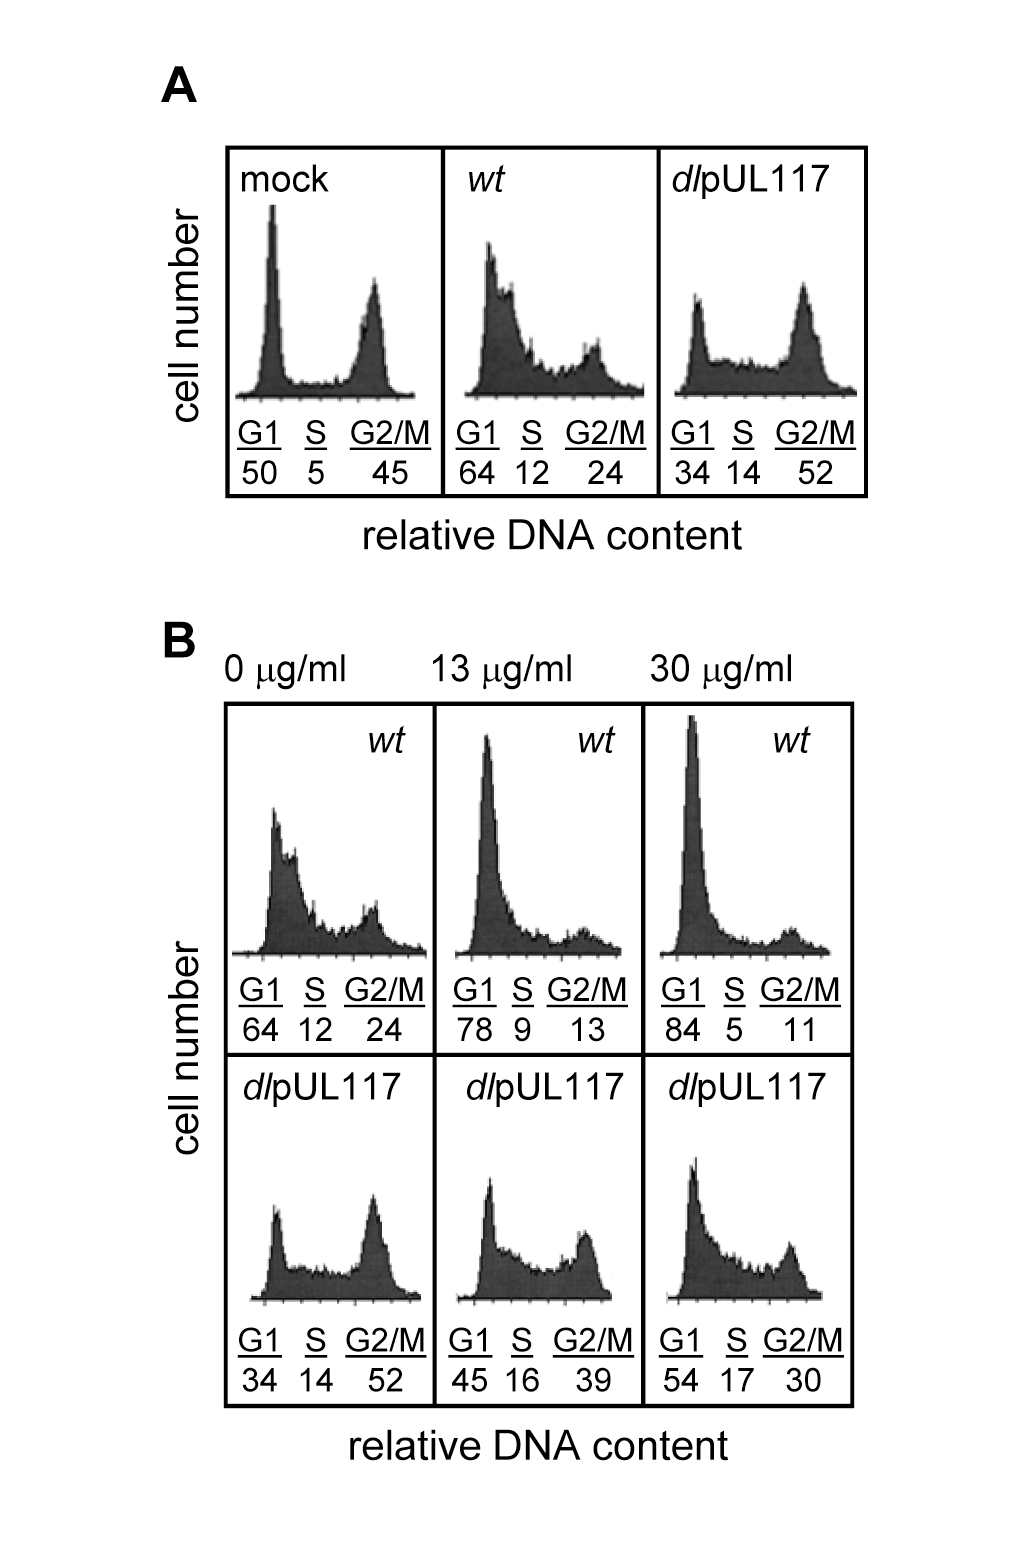 UL117-deficient virus failed to block host DNA synthesis during infection of actively growing human foreskin fibroblasts (HFFs).